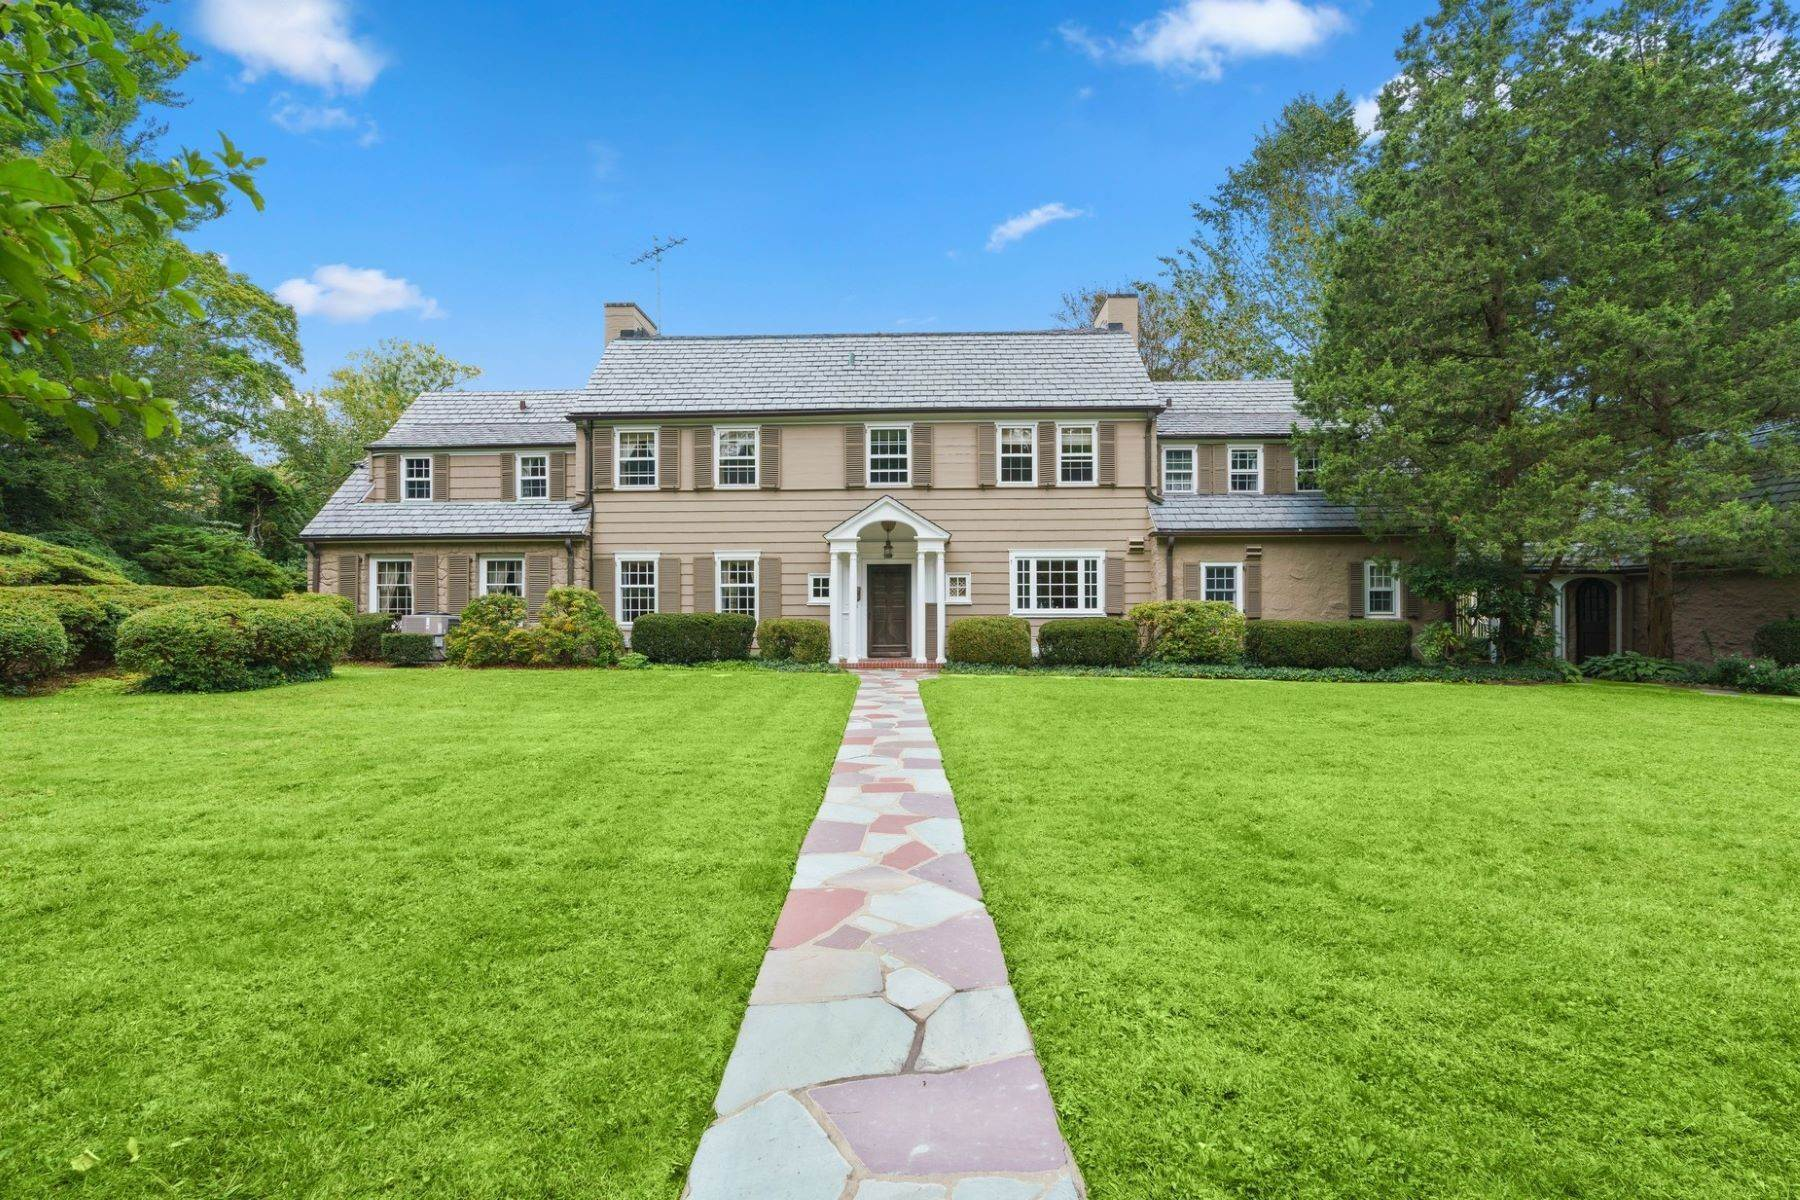 Single Family Homes for Sale at Beautifully Landscaped Property 3 Richbell Road Scarsdale, New York 10583 United States